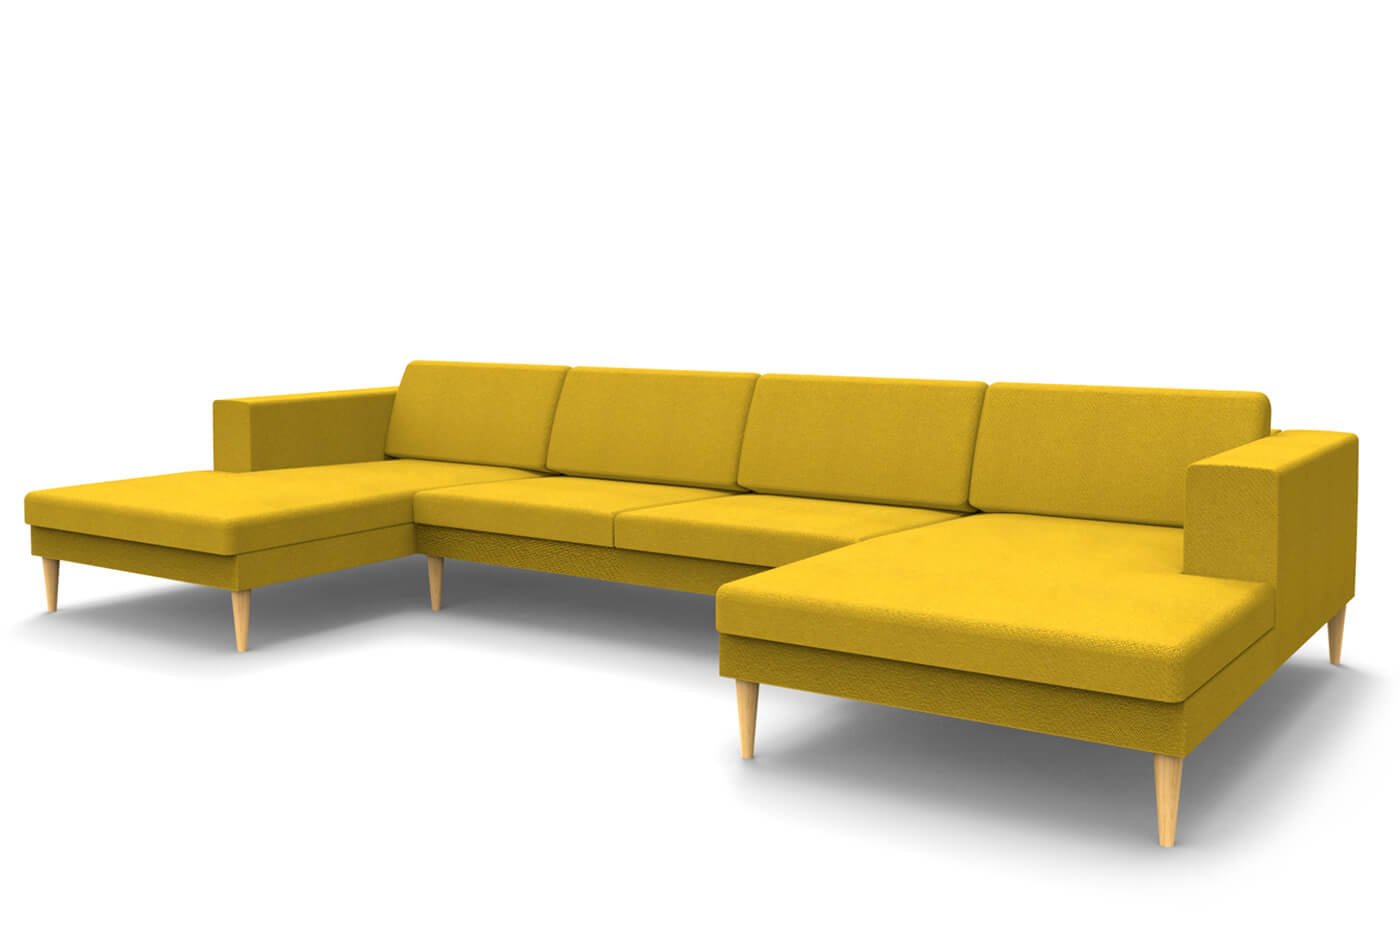 OOT-OOT_Studio_Frend_Sofa_Double_Chaise_Lounge_thumb